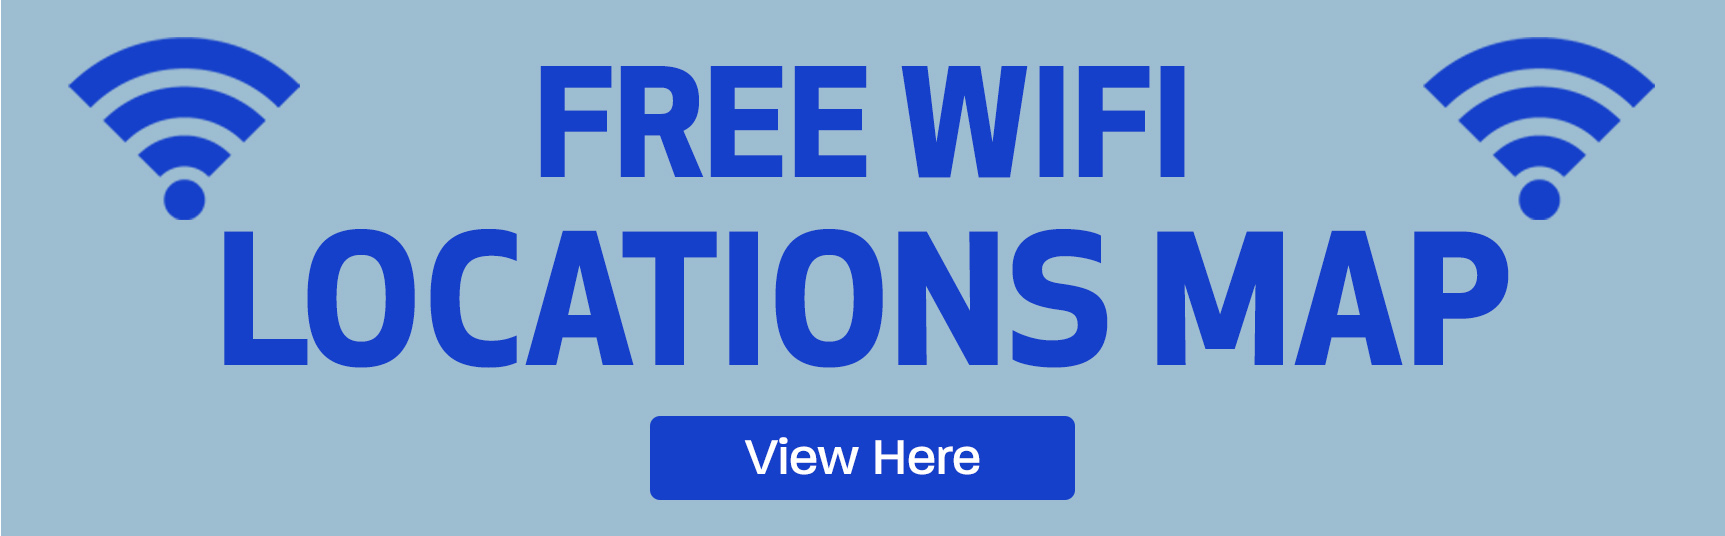 Free WiFi location from Star Communications